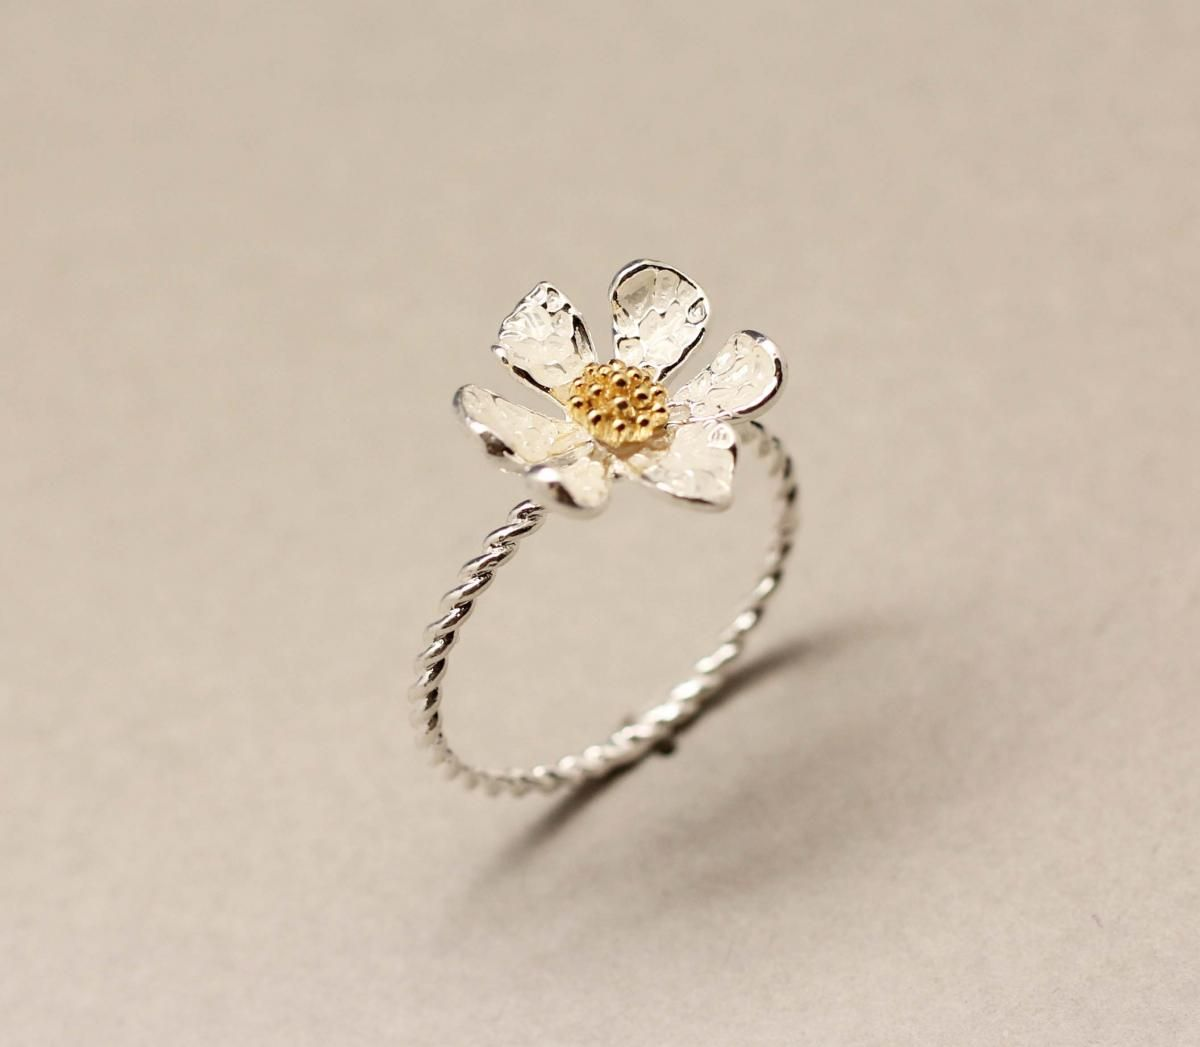 Danity white daisy flower ring on luulla for kelly pinterest danity white daisy flower ring izmirmasajfo Image collections